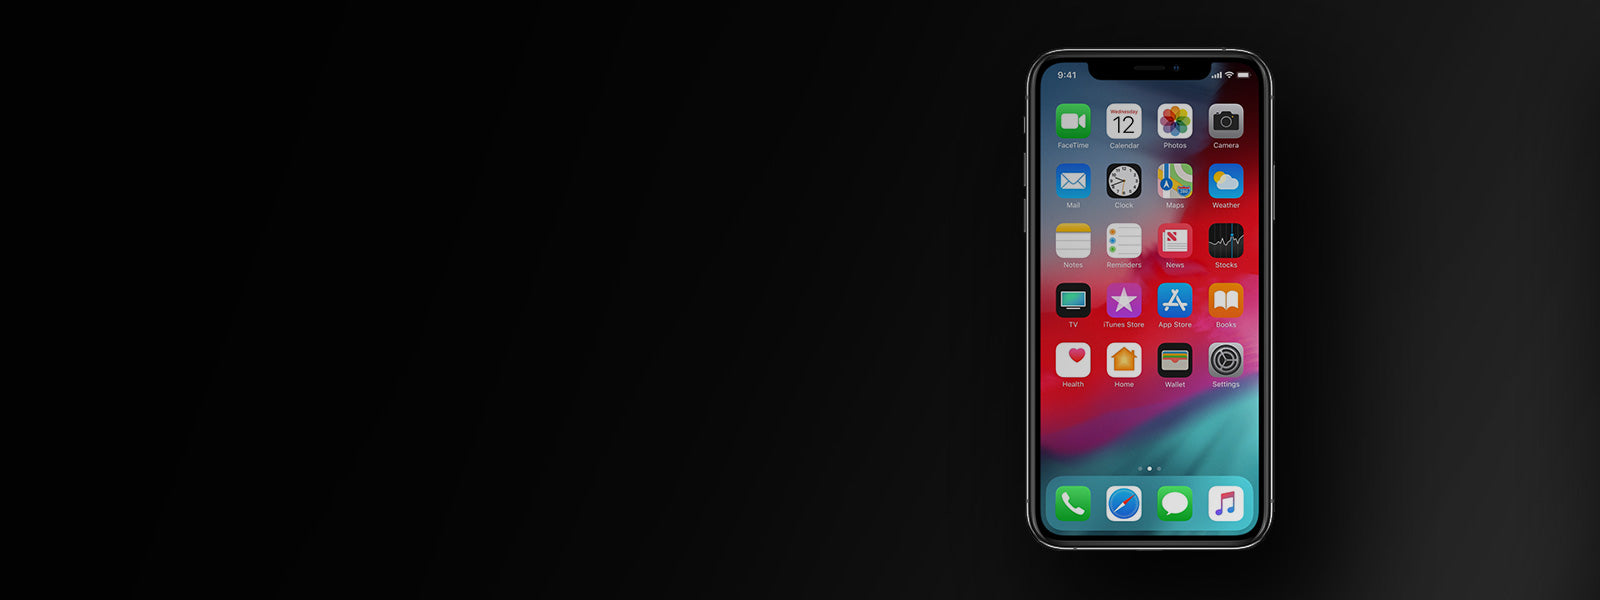 iOS 12 - To update or not to update? – Quad Lock® USA